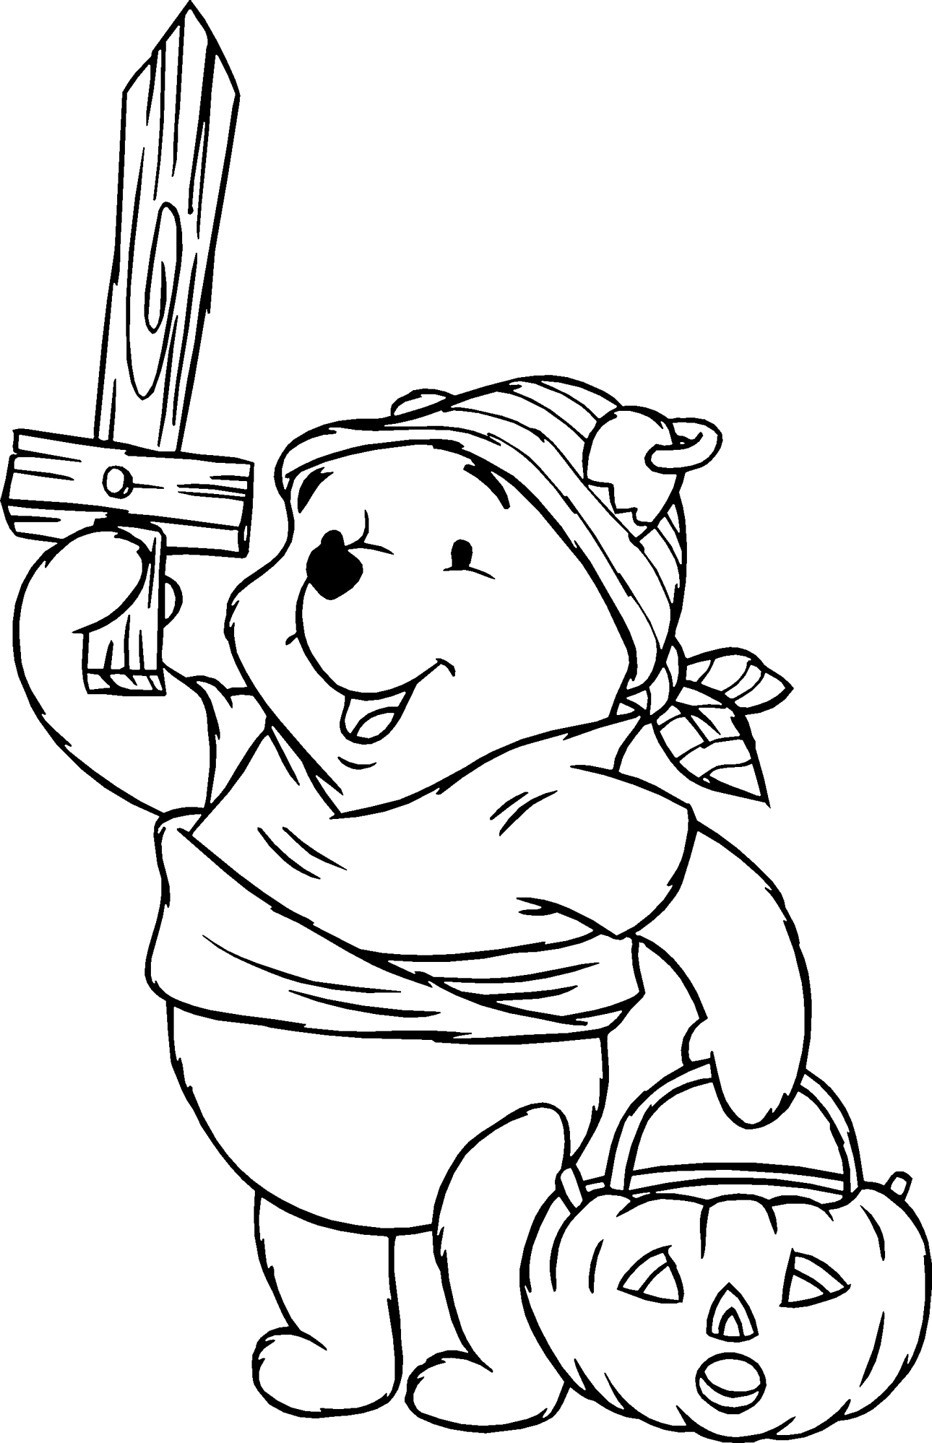 Best ideas about Free Coloring Pages To Print For Kids . Save or Pin 24 Free Printable Halloween Coloring Pages for Kids Now.